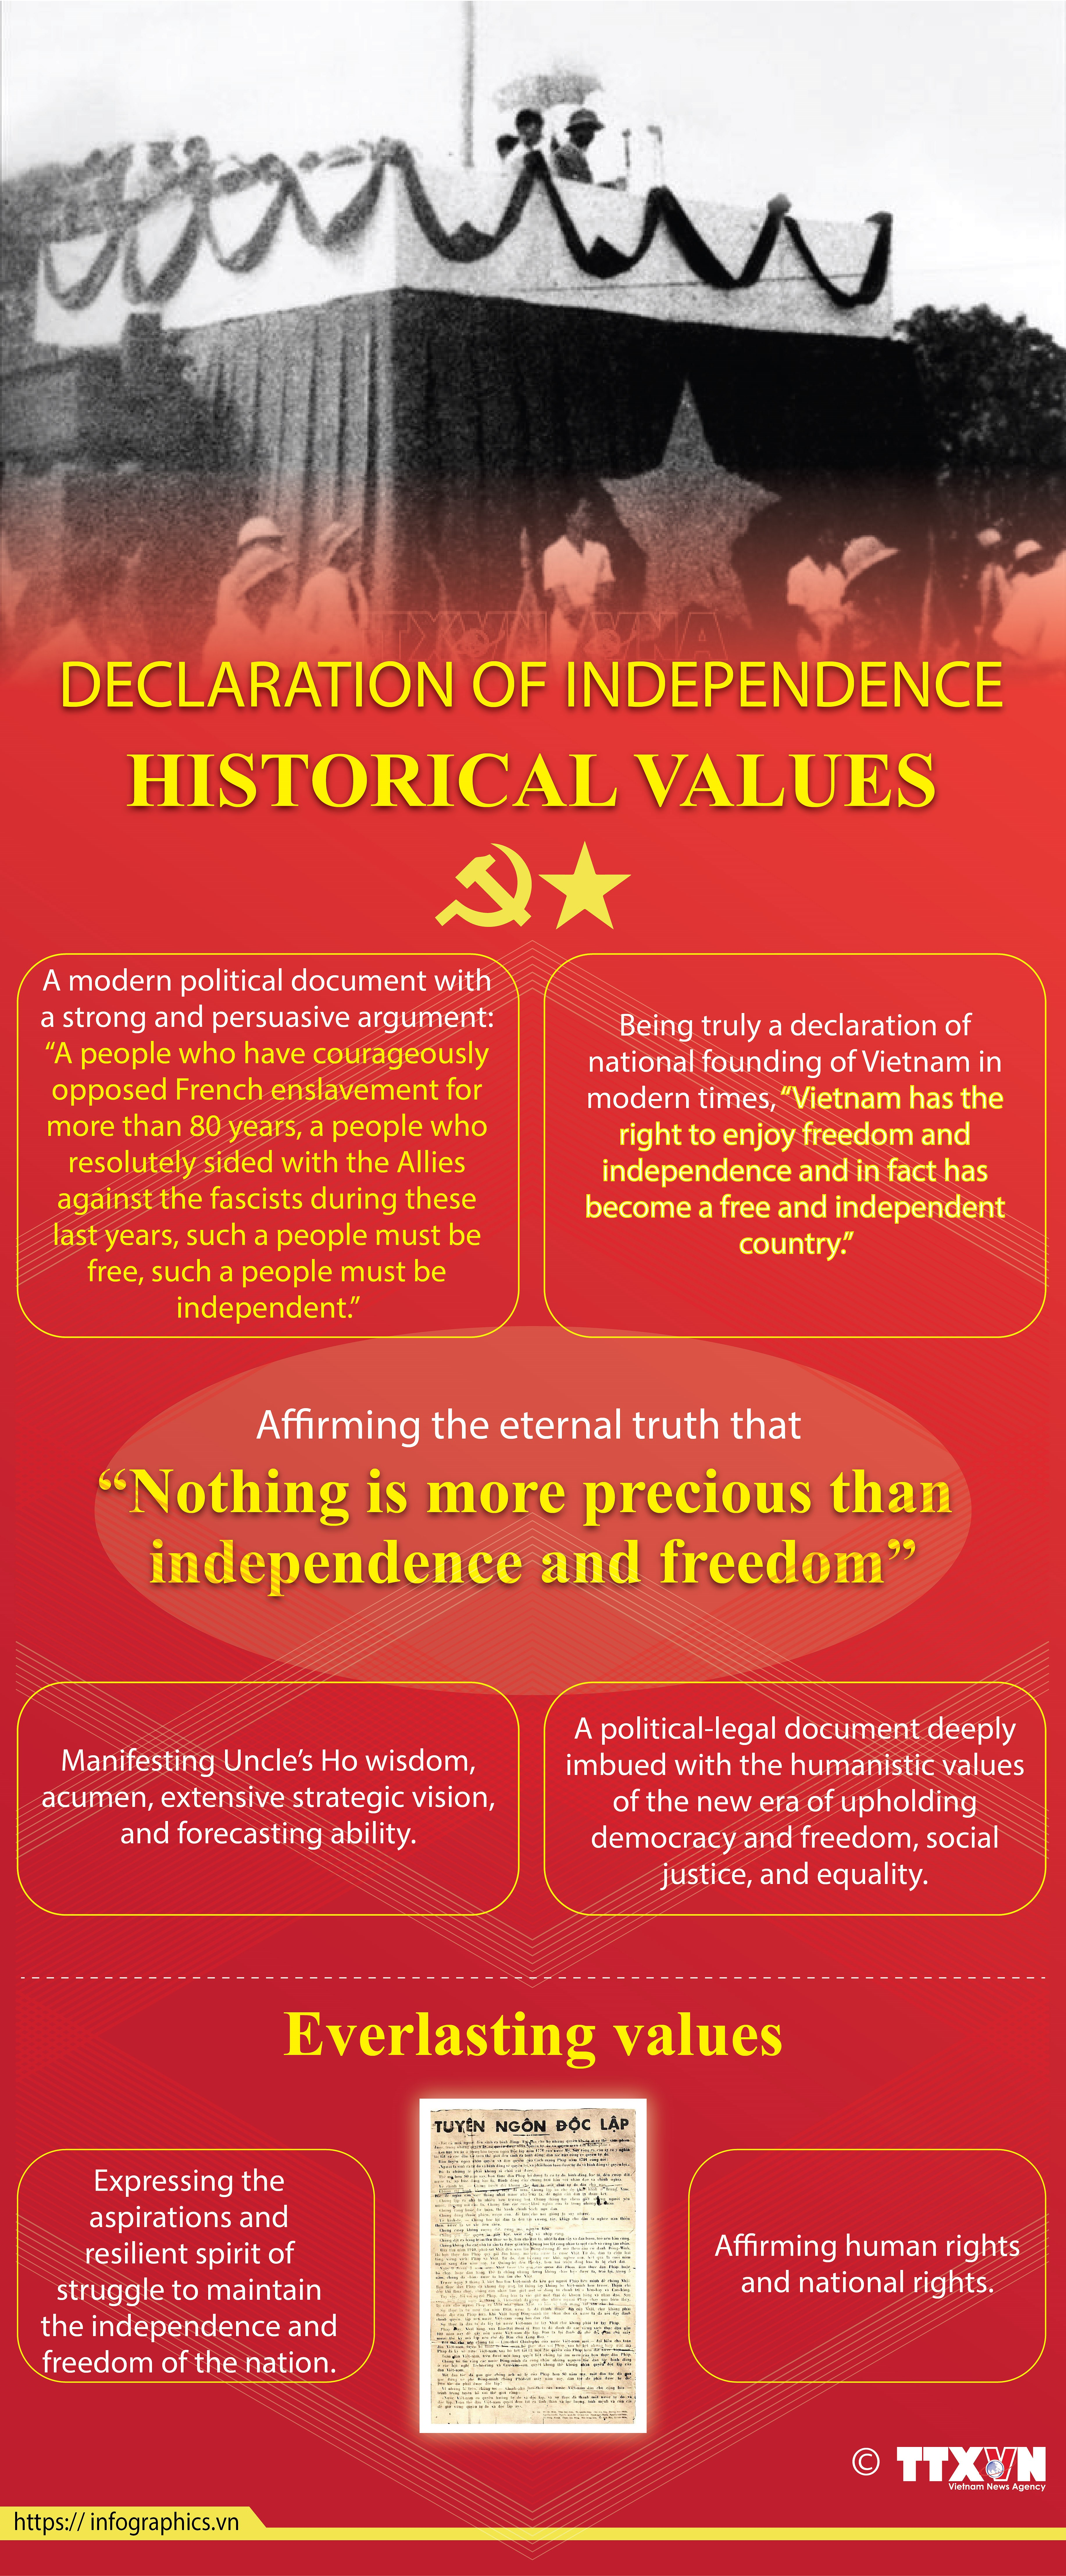 Historical values of Declaration of Independence hinh anh 1